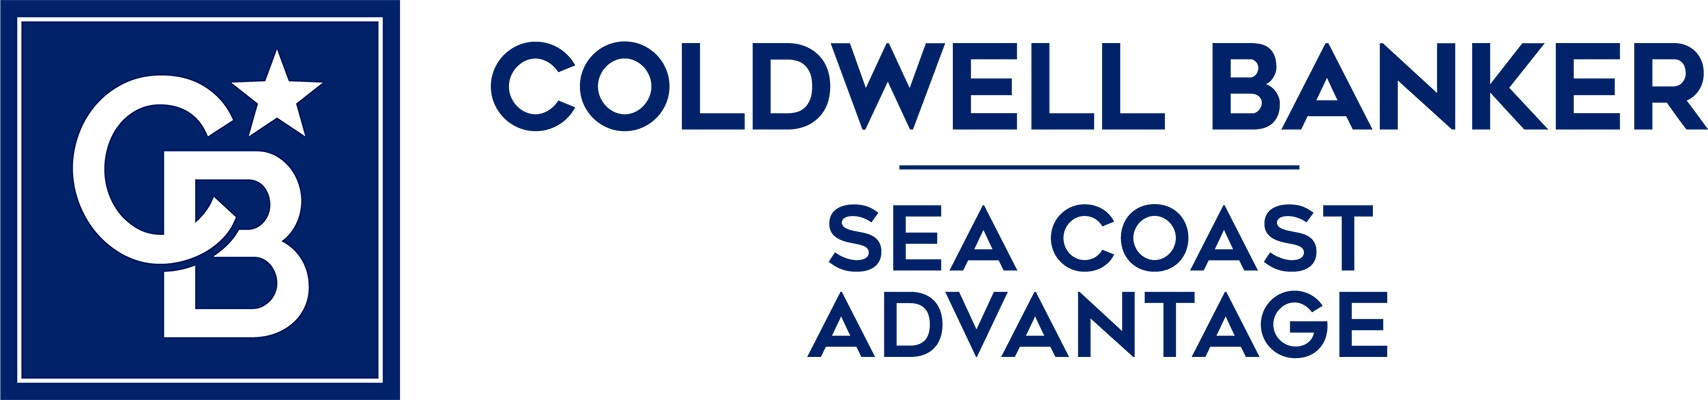 Patrick Woerner - Coldwell Banker Sea Coast Advantage Realty Logo